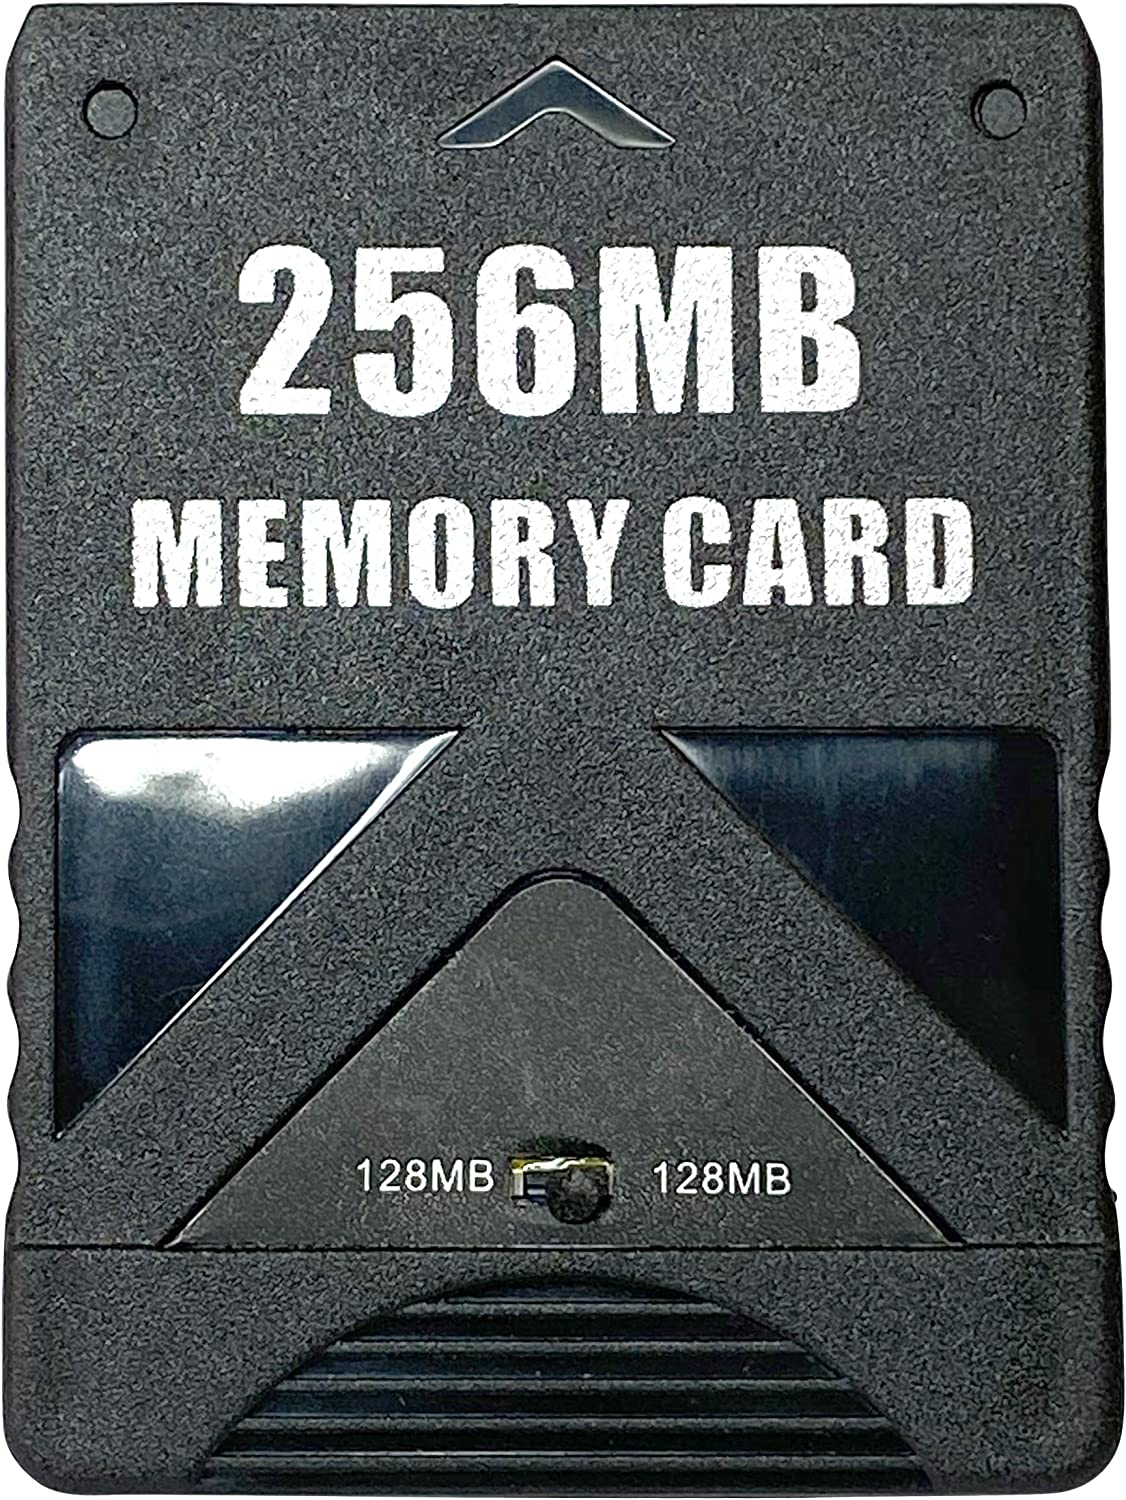 Detroit Packing Co. High Speed Memory Card for Playstation 2, Compatible with Sony PS2, 256MB (4086 Blocks)